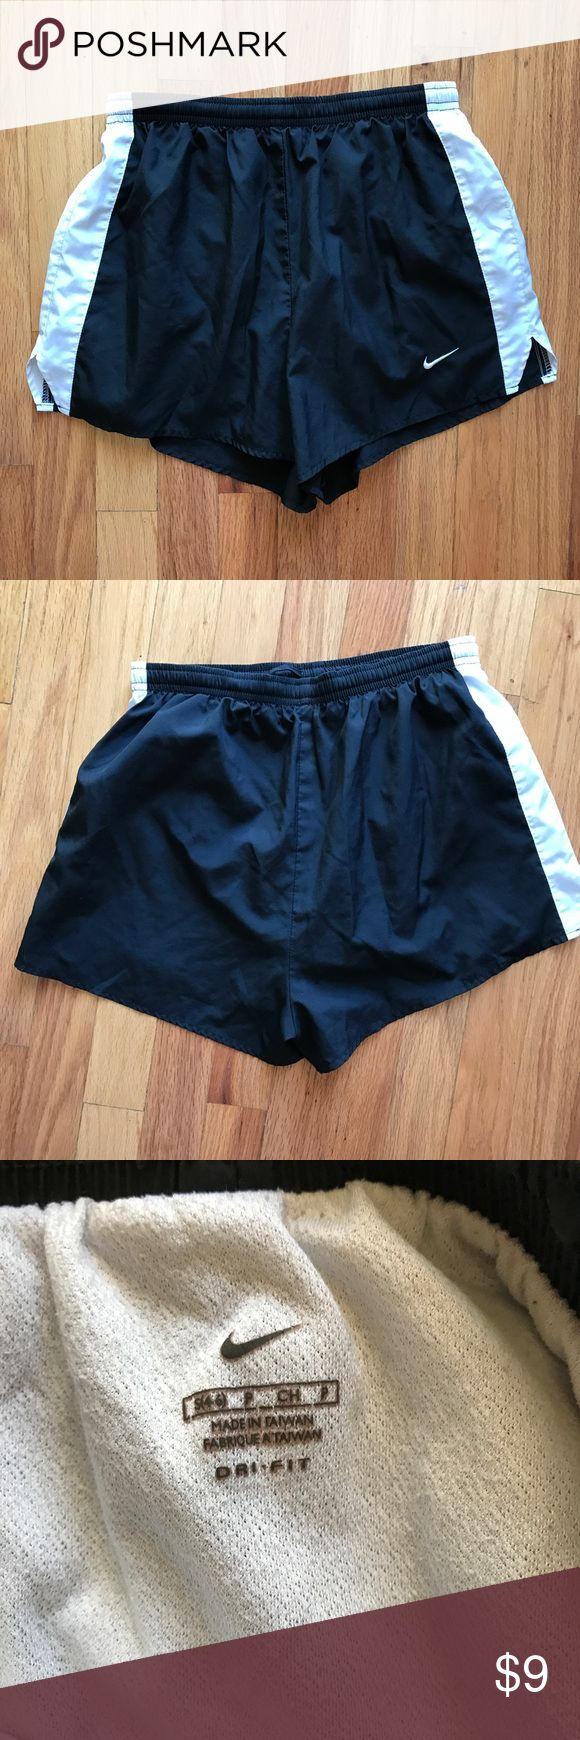 Women's Nike Running Shorts Black and white Running Shorts. Excellent condition. Size small. Smokeless and no flaws. Nike Shorts